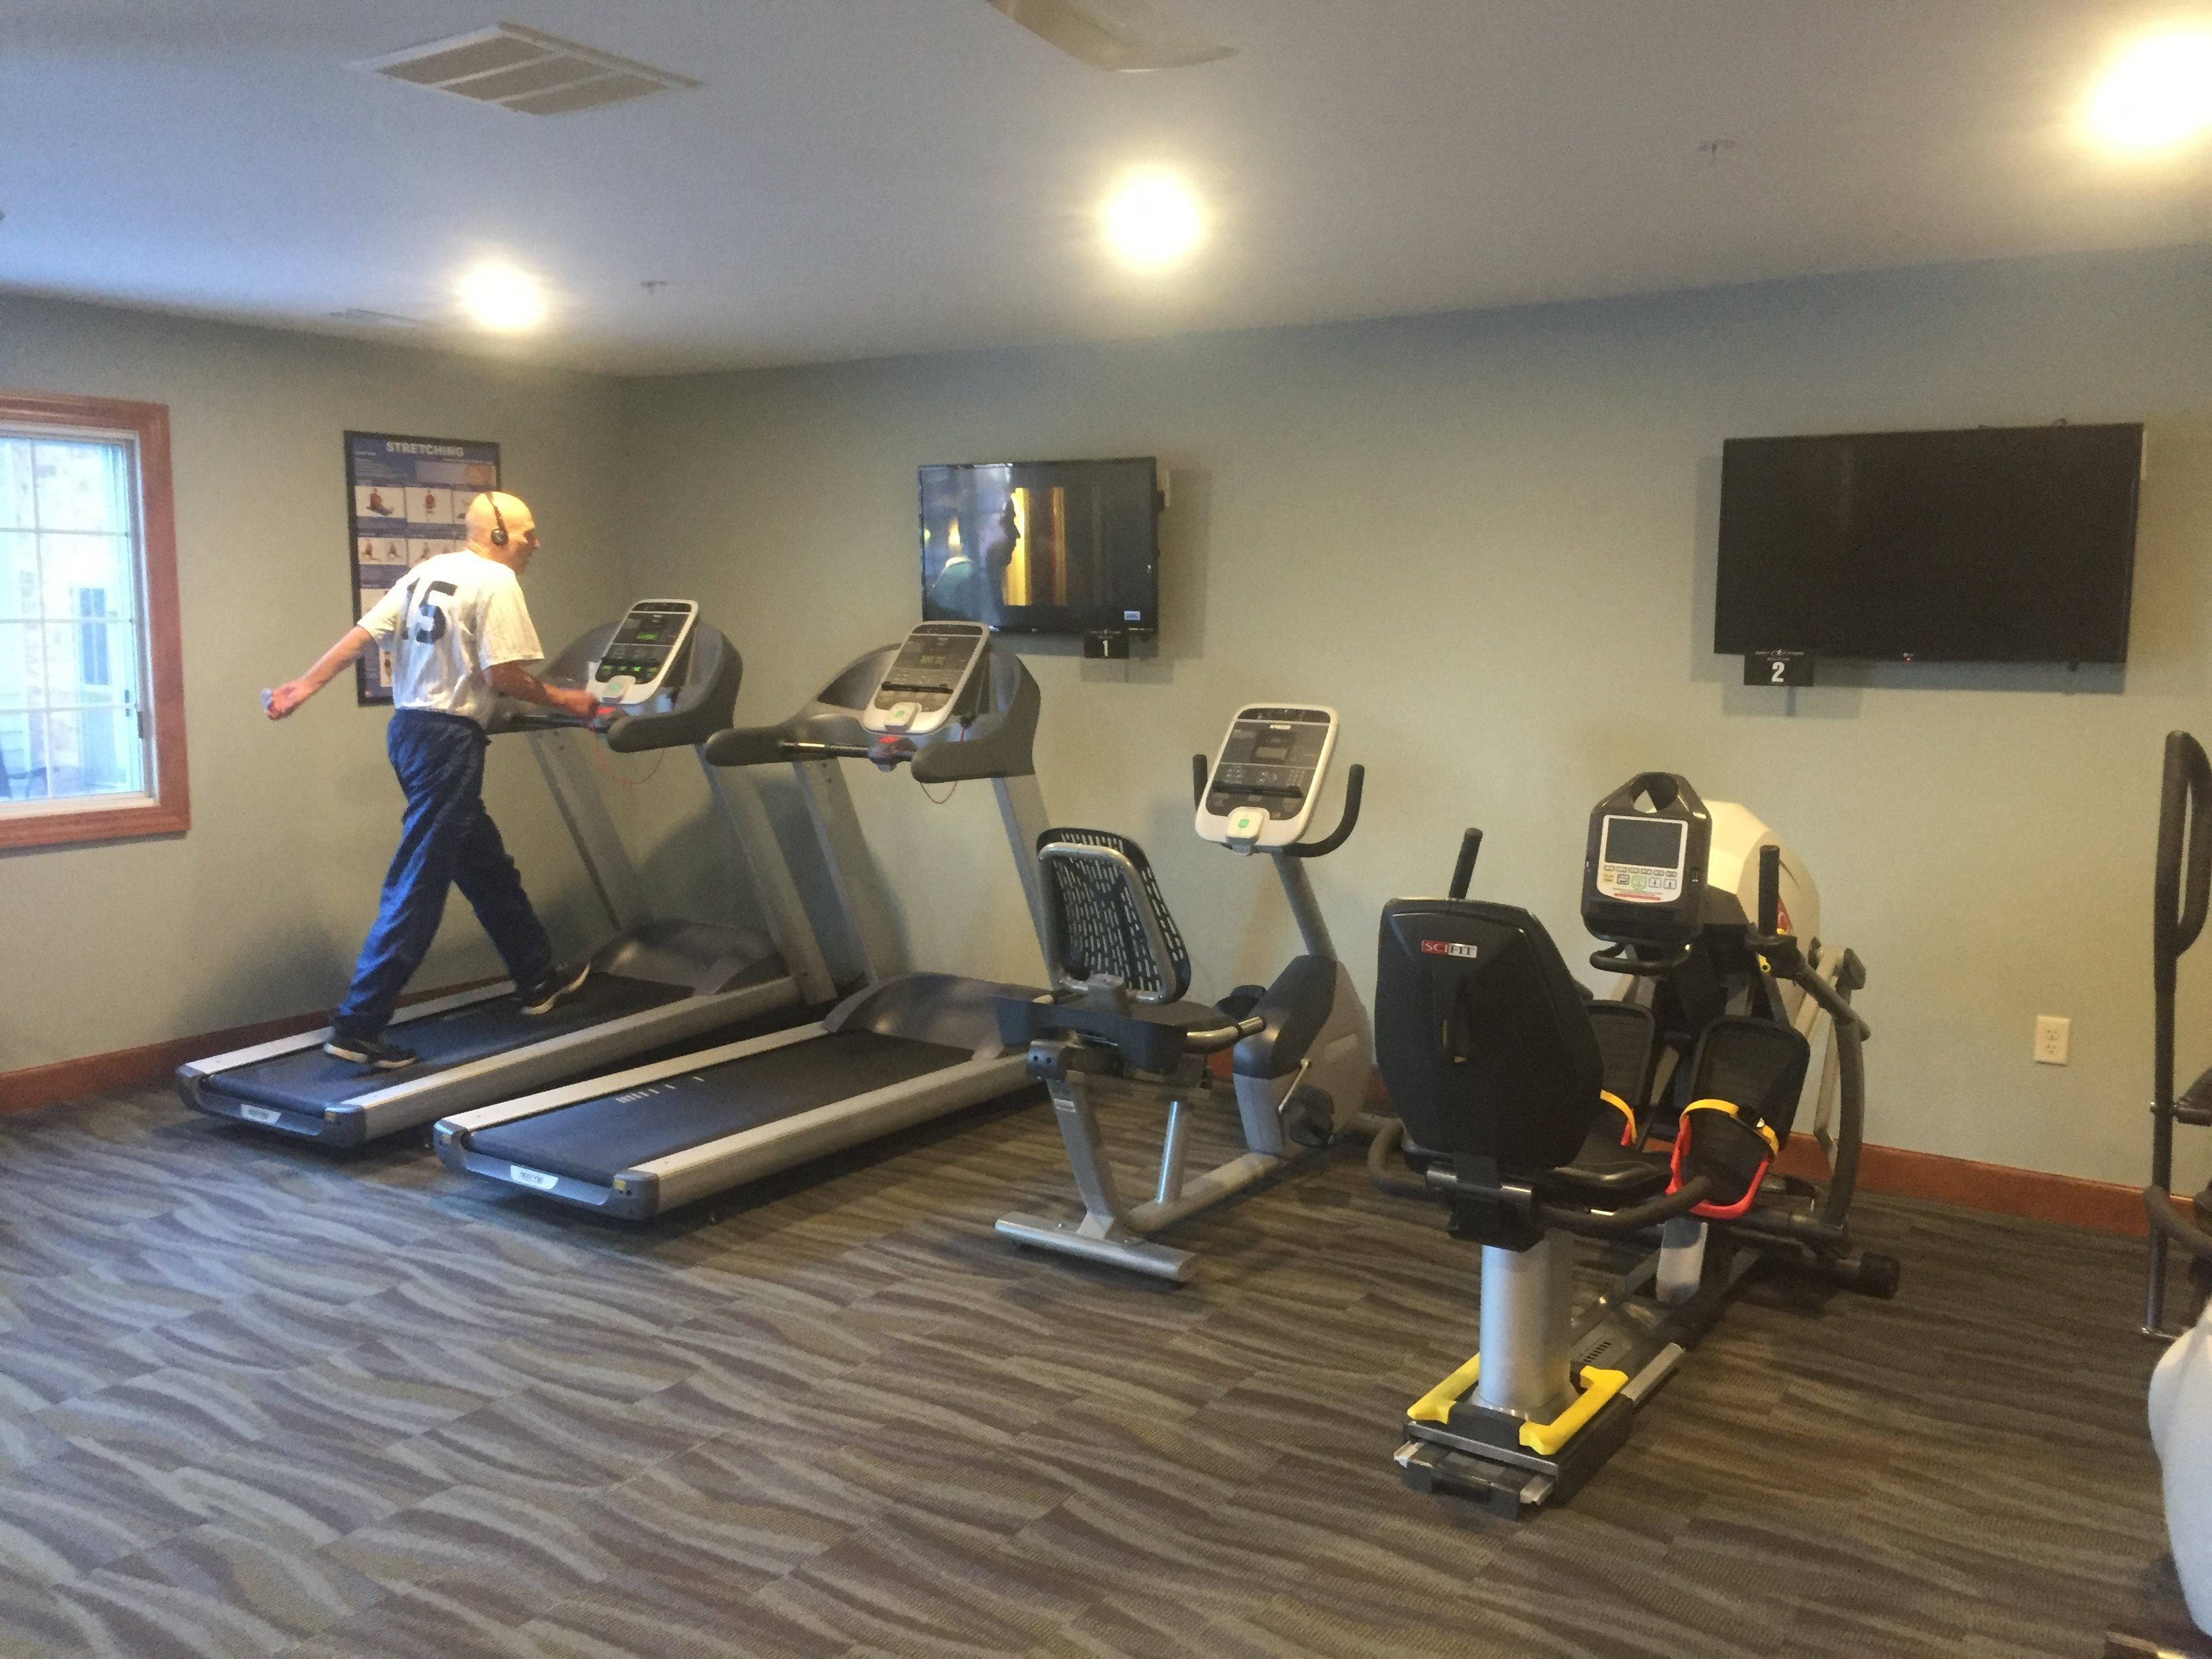 Cardio Equipment at Wildwood Highlands Apartments & Townhomes 55+, N78w17445 Wildwood Drive, WI 53051